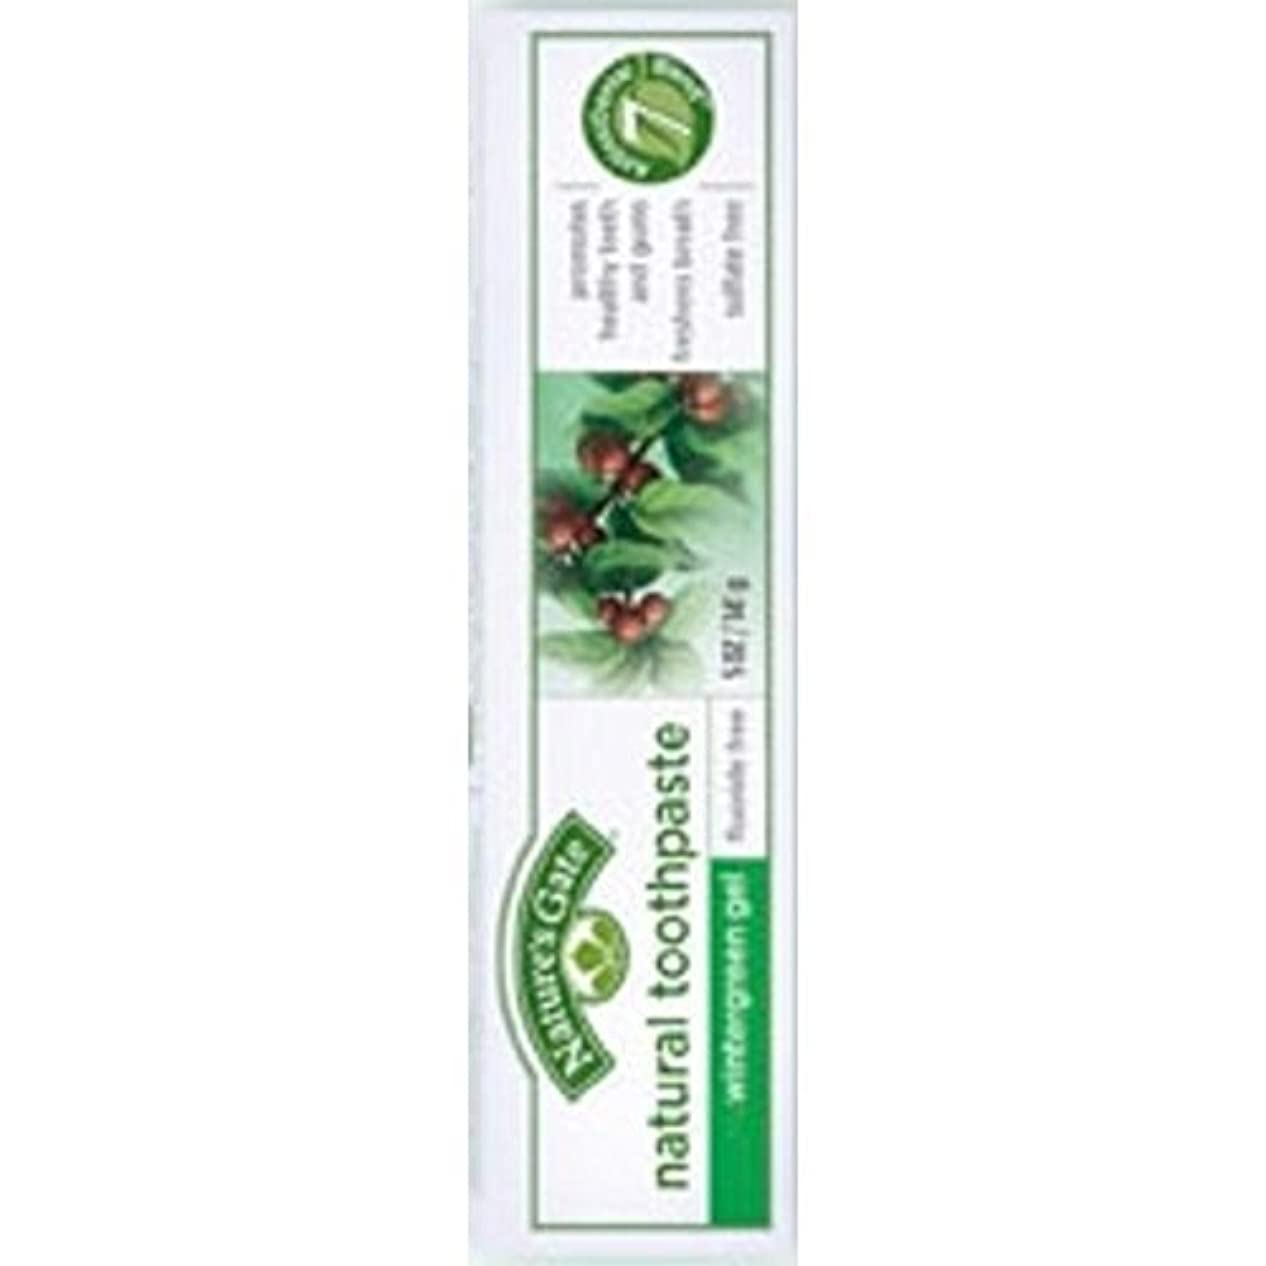 レバークレーン毛皮Nature's Gate Natural Toothpaste Gel Flouride Free Wintergreen - 5 oz - Case of 6 by Nature's Gate [並行輸入品]